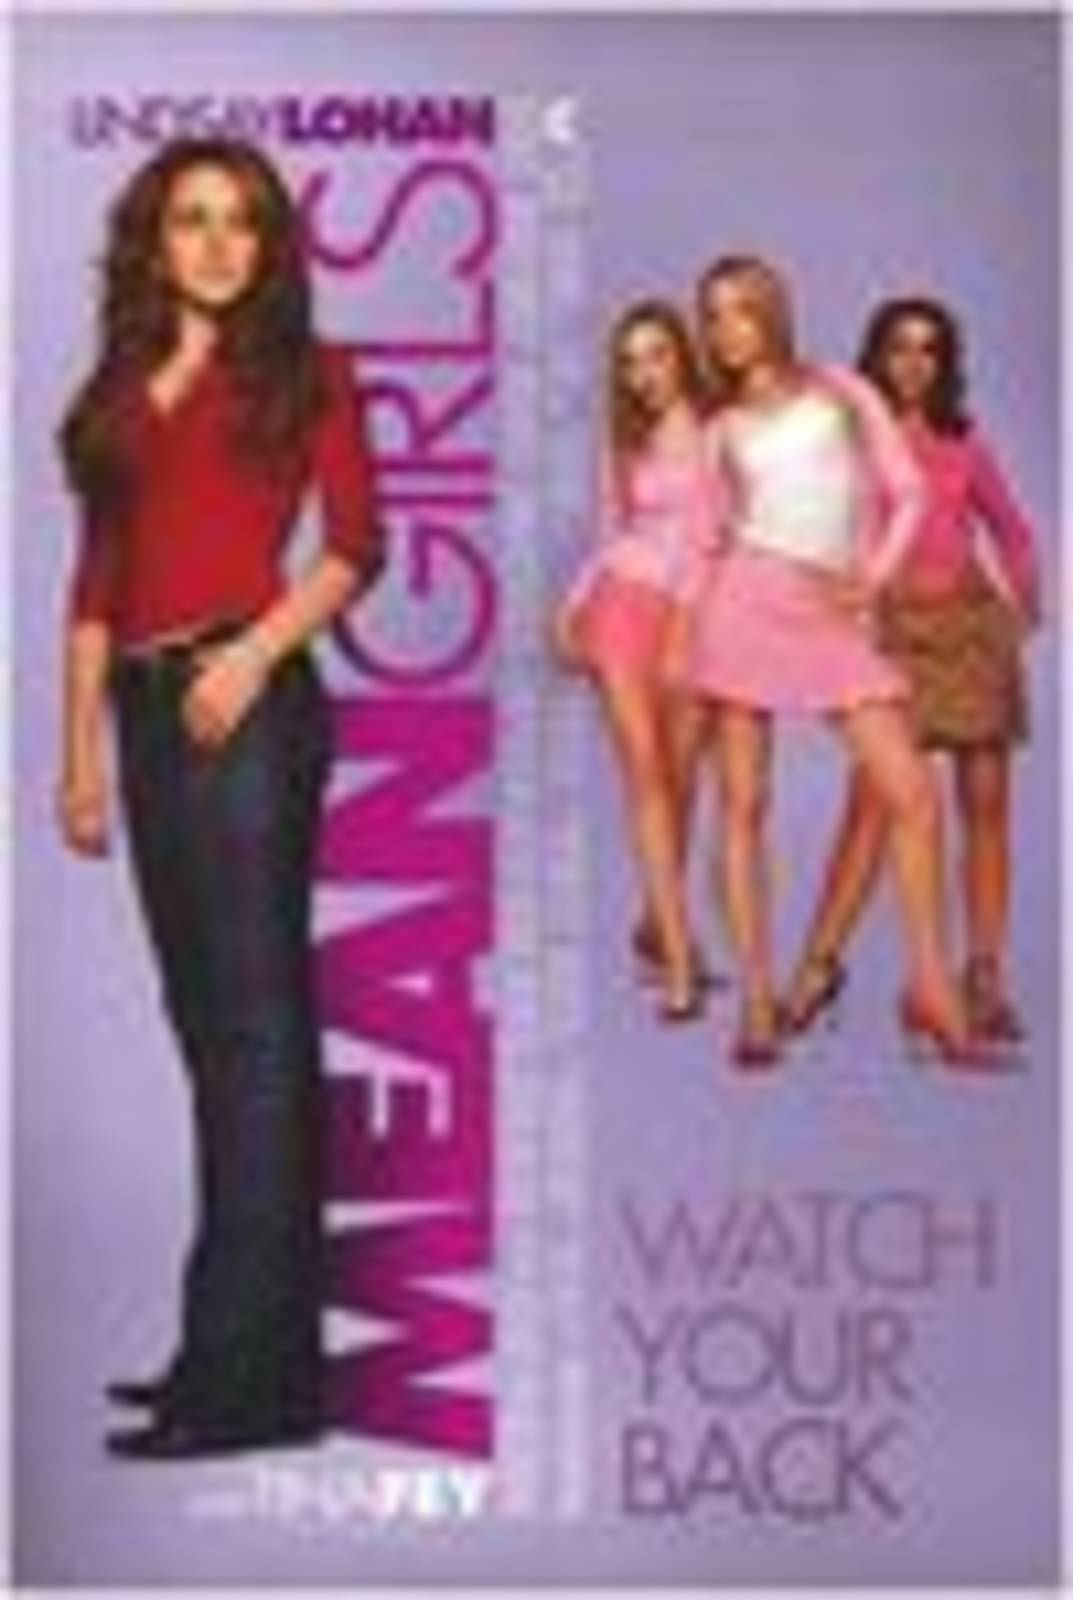 movie critique of mean girls Transcript of a sociological analysis of mean girls chapter 5 social interaction & social structure chapter 6 in reference to mean girls, functionalist would view all of the different groups in this movie as necessary to the functionality of high school.